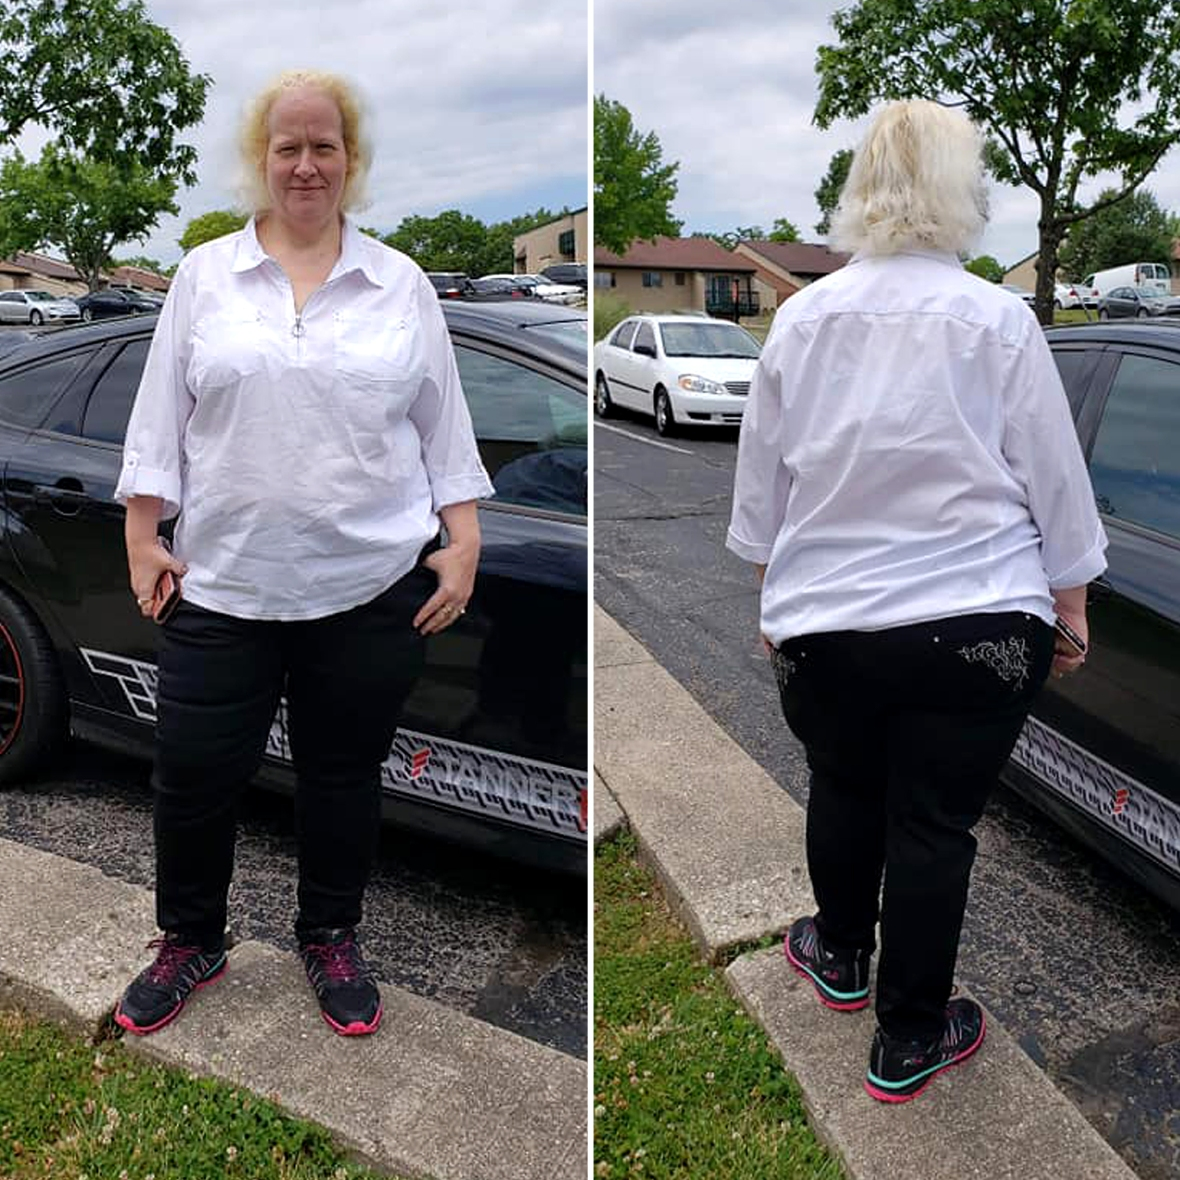 Tamy Lyn Loving to Do All the Things She Wasn't Able to Do Before Weight Loss